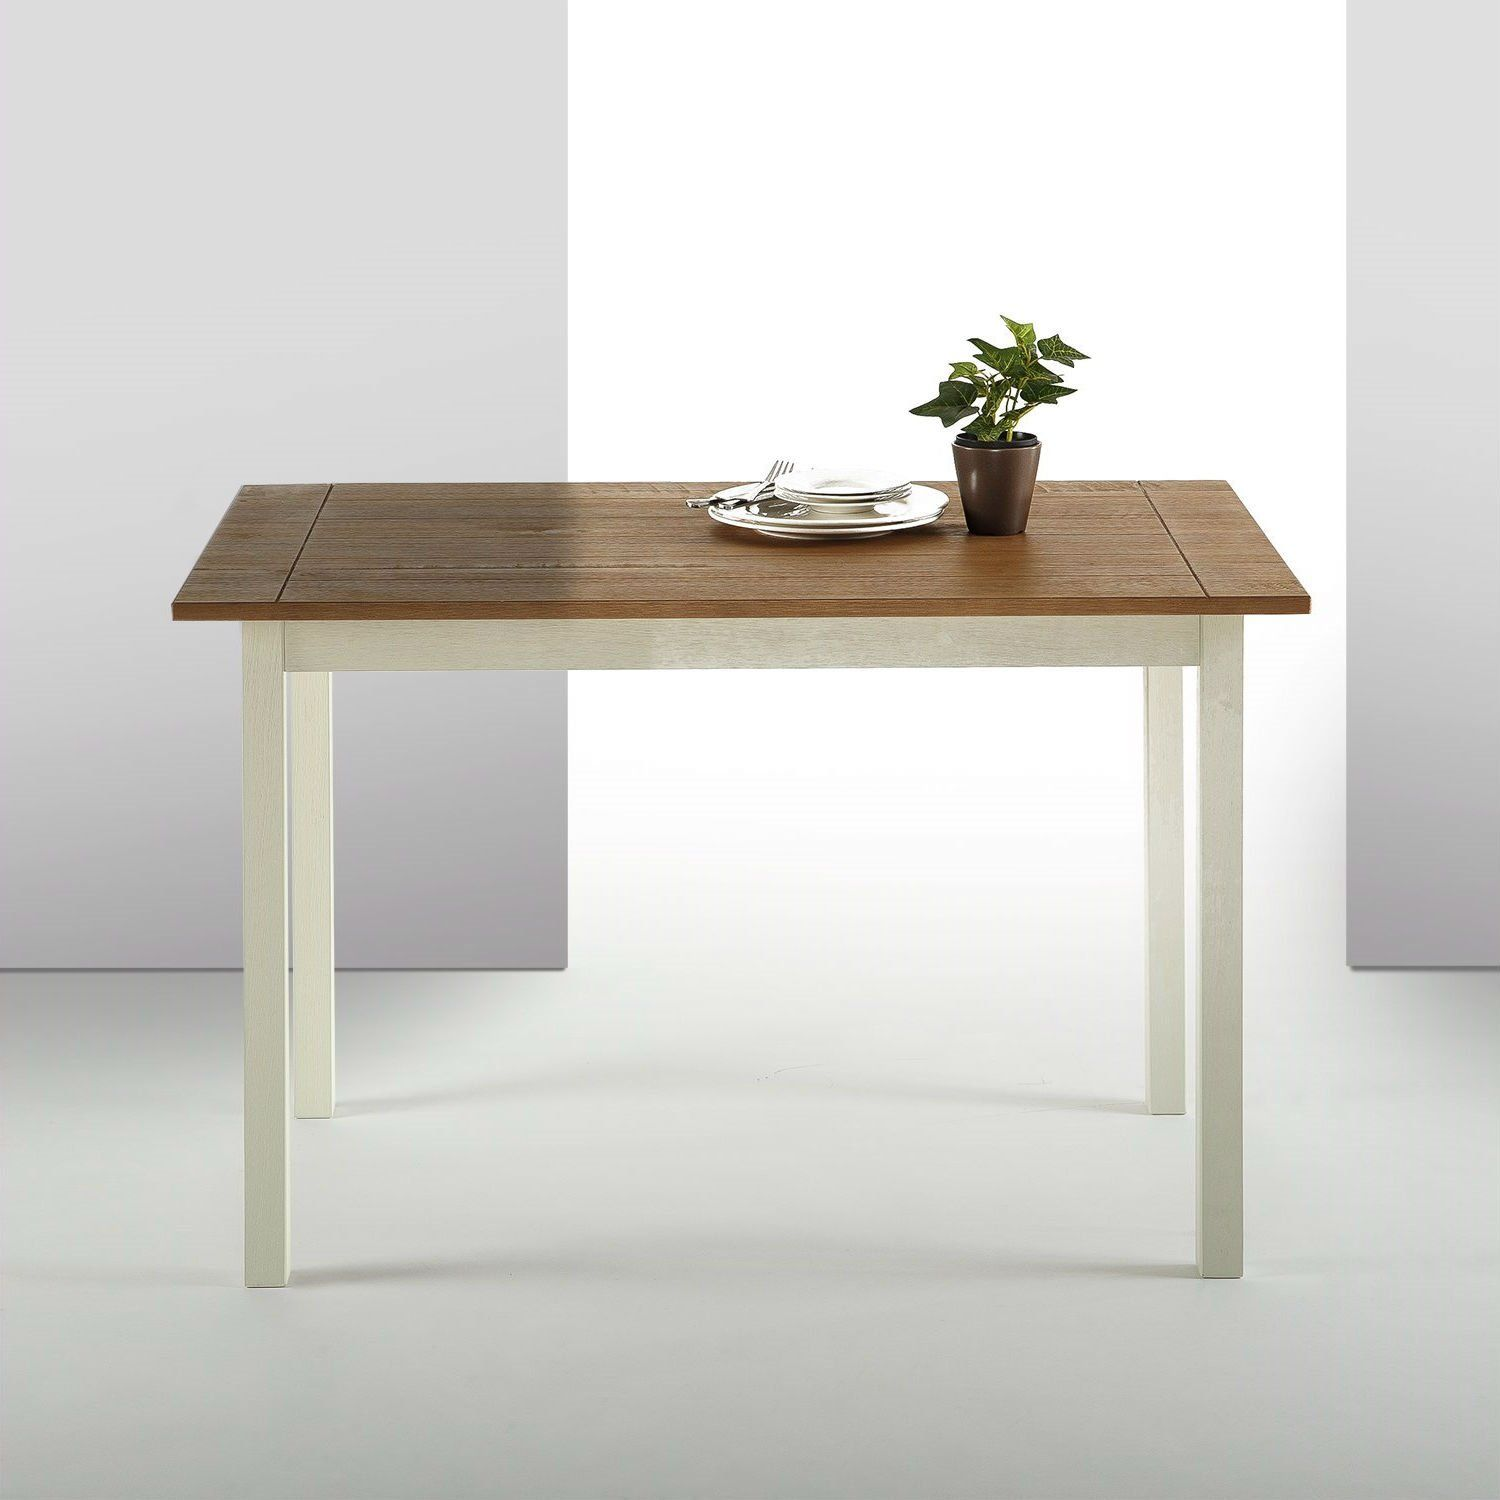 Classic pine wood 45 x 28 inch dining table with white